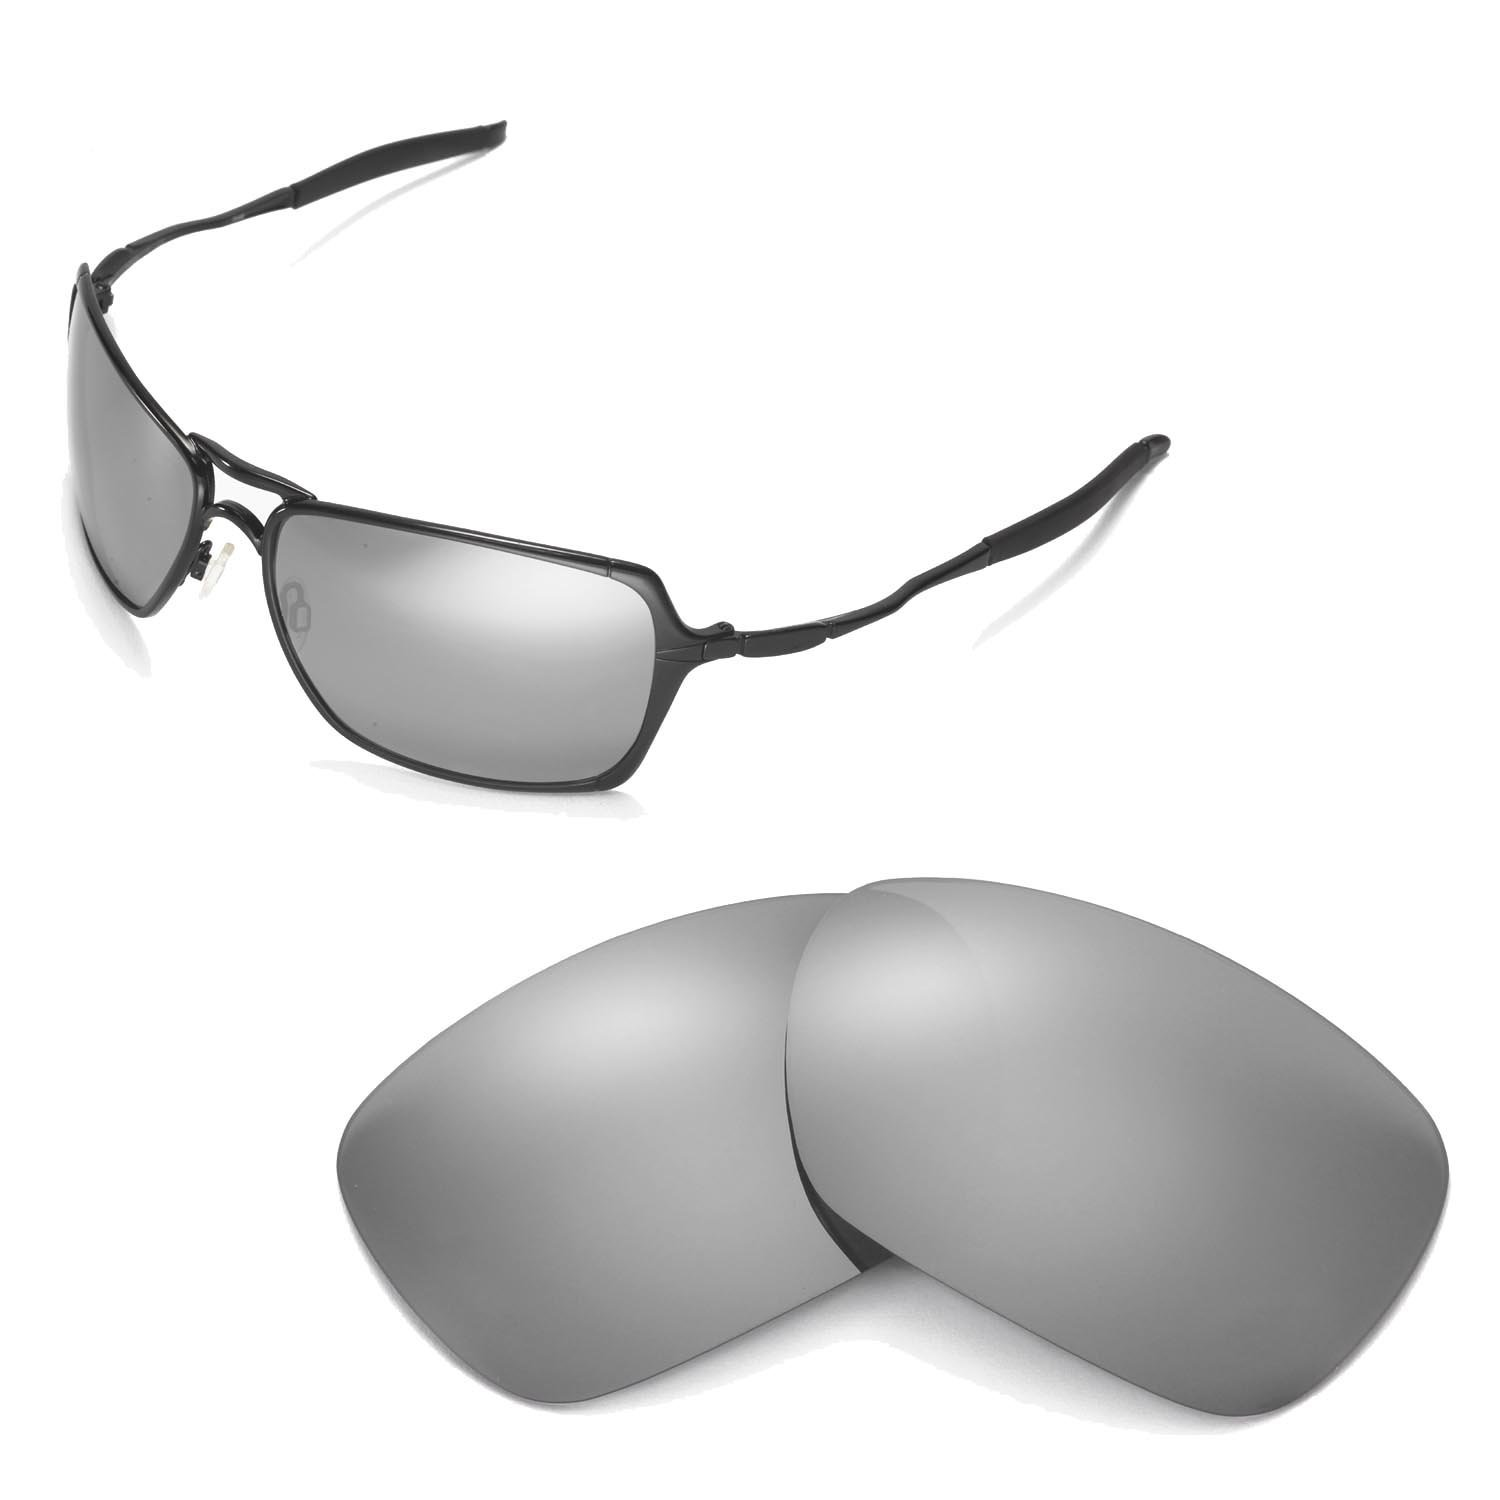 Amazon.com : Walleva Replacement Lenses for Oakley Inmate Sunglasses - Multiple Options Available (Titanium Mirror Coated - Polarized) : Sports Fan Shot Glasses